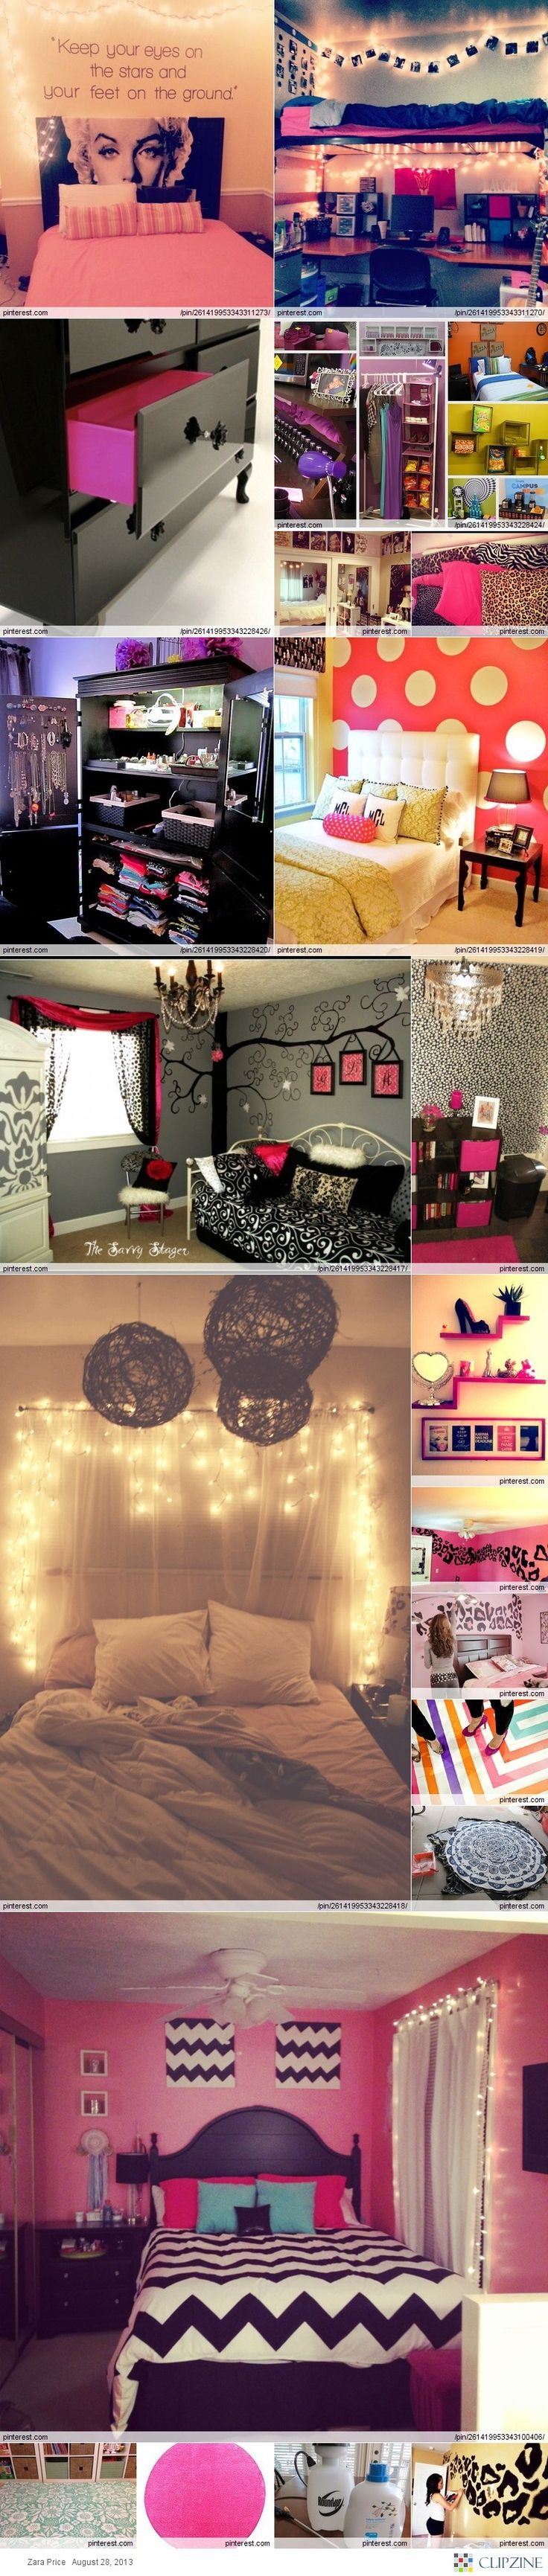 girls room ideas... a lot of these are a little over the top, but there are a few cute ideas